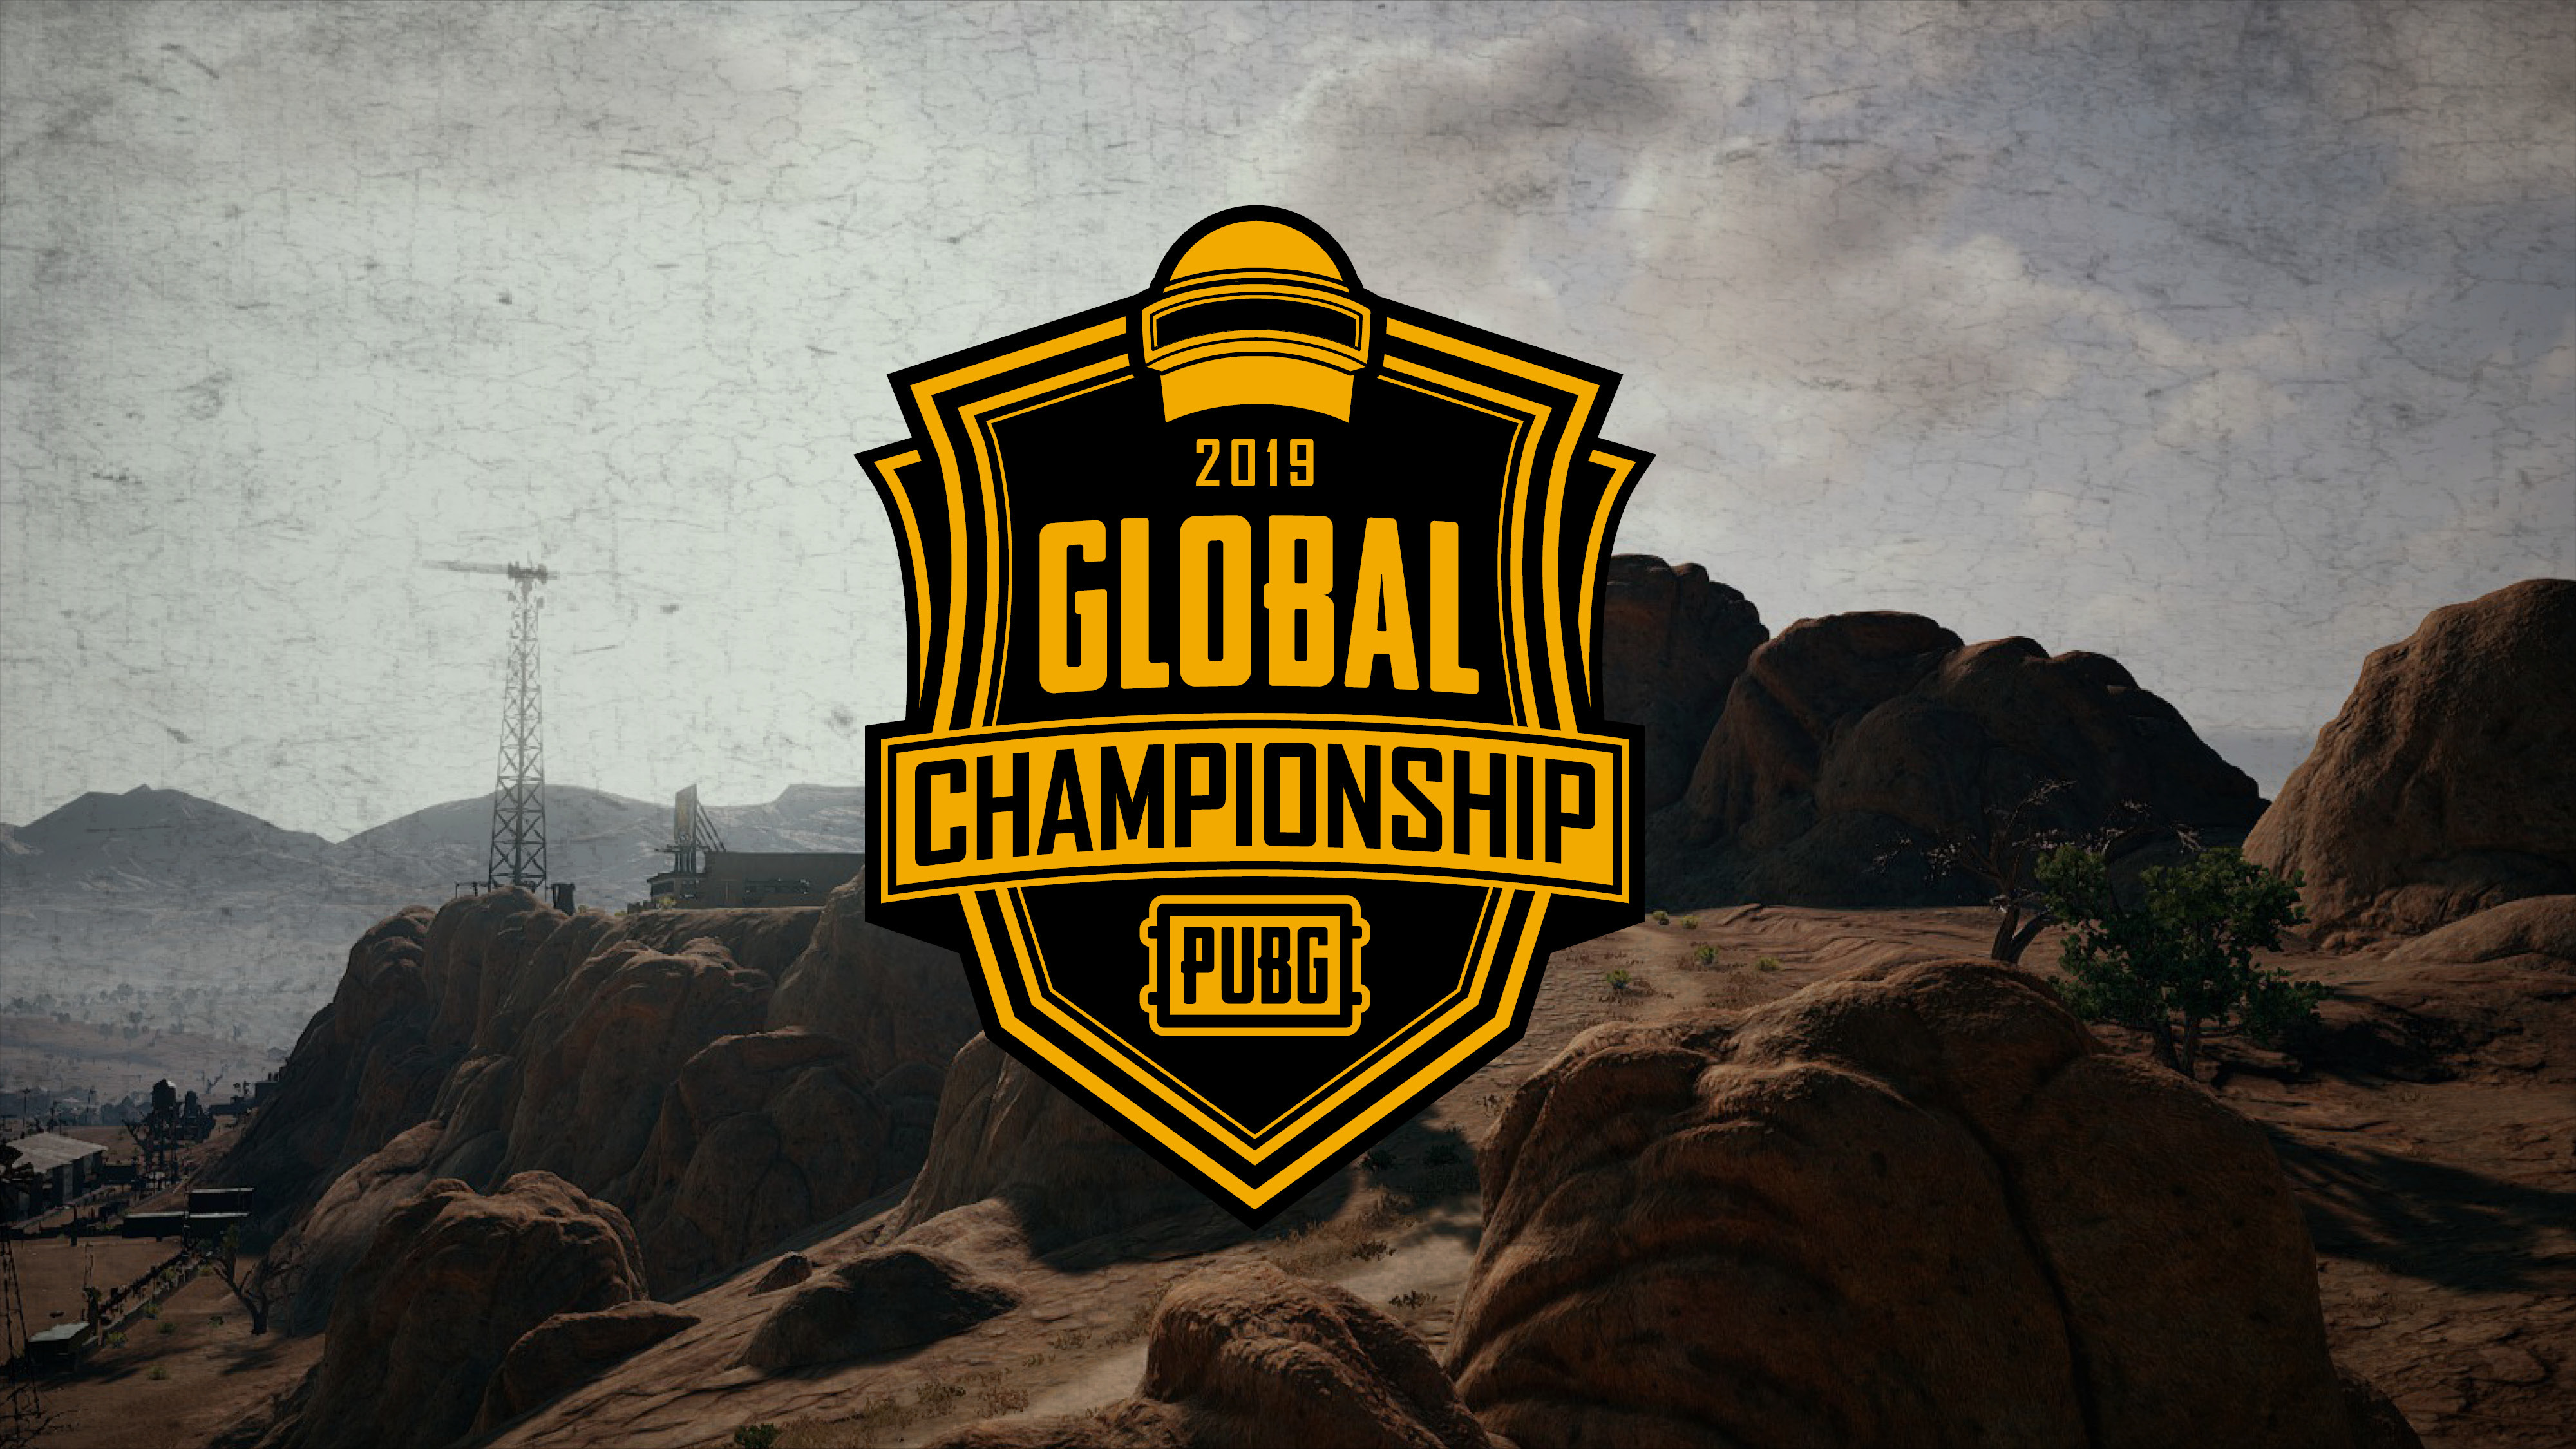 Global Championship will be the culmination of the competitive PUBG season